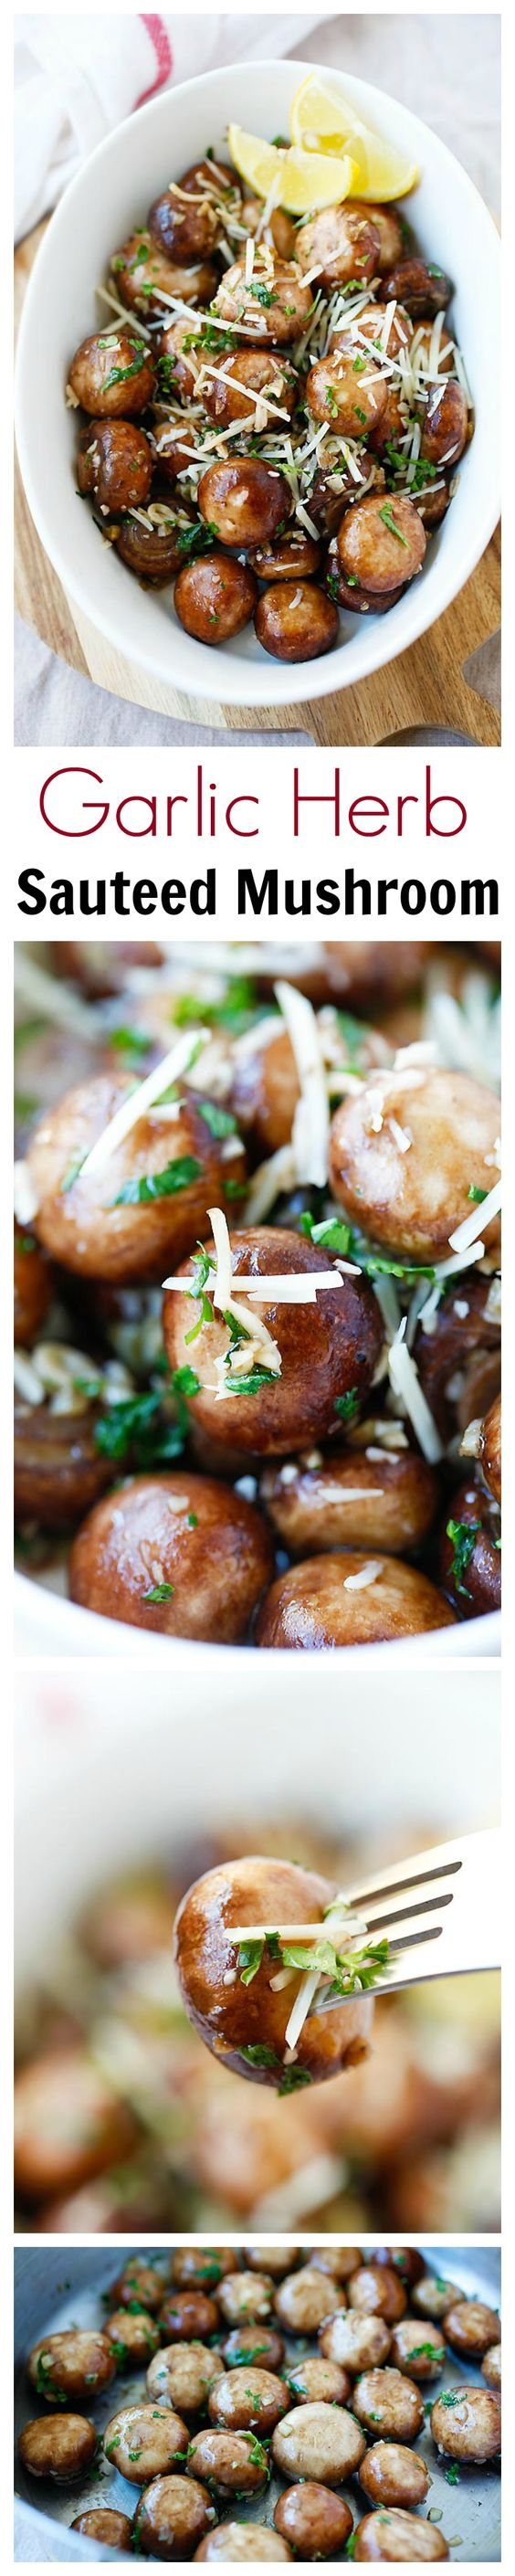 Garlic Herb Sauteed Mushrooms -easy and healthy sauteed mushrooms recipe that takes only 10 mins from prep to dinner table. Saute the mushrooms with olive oil, garlic, parsley, and top with Parmesan cheese | rasamalaysia.com